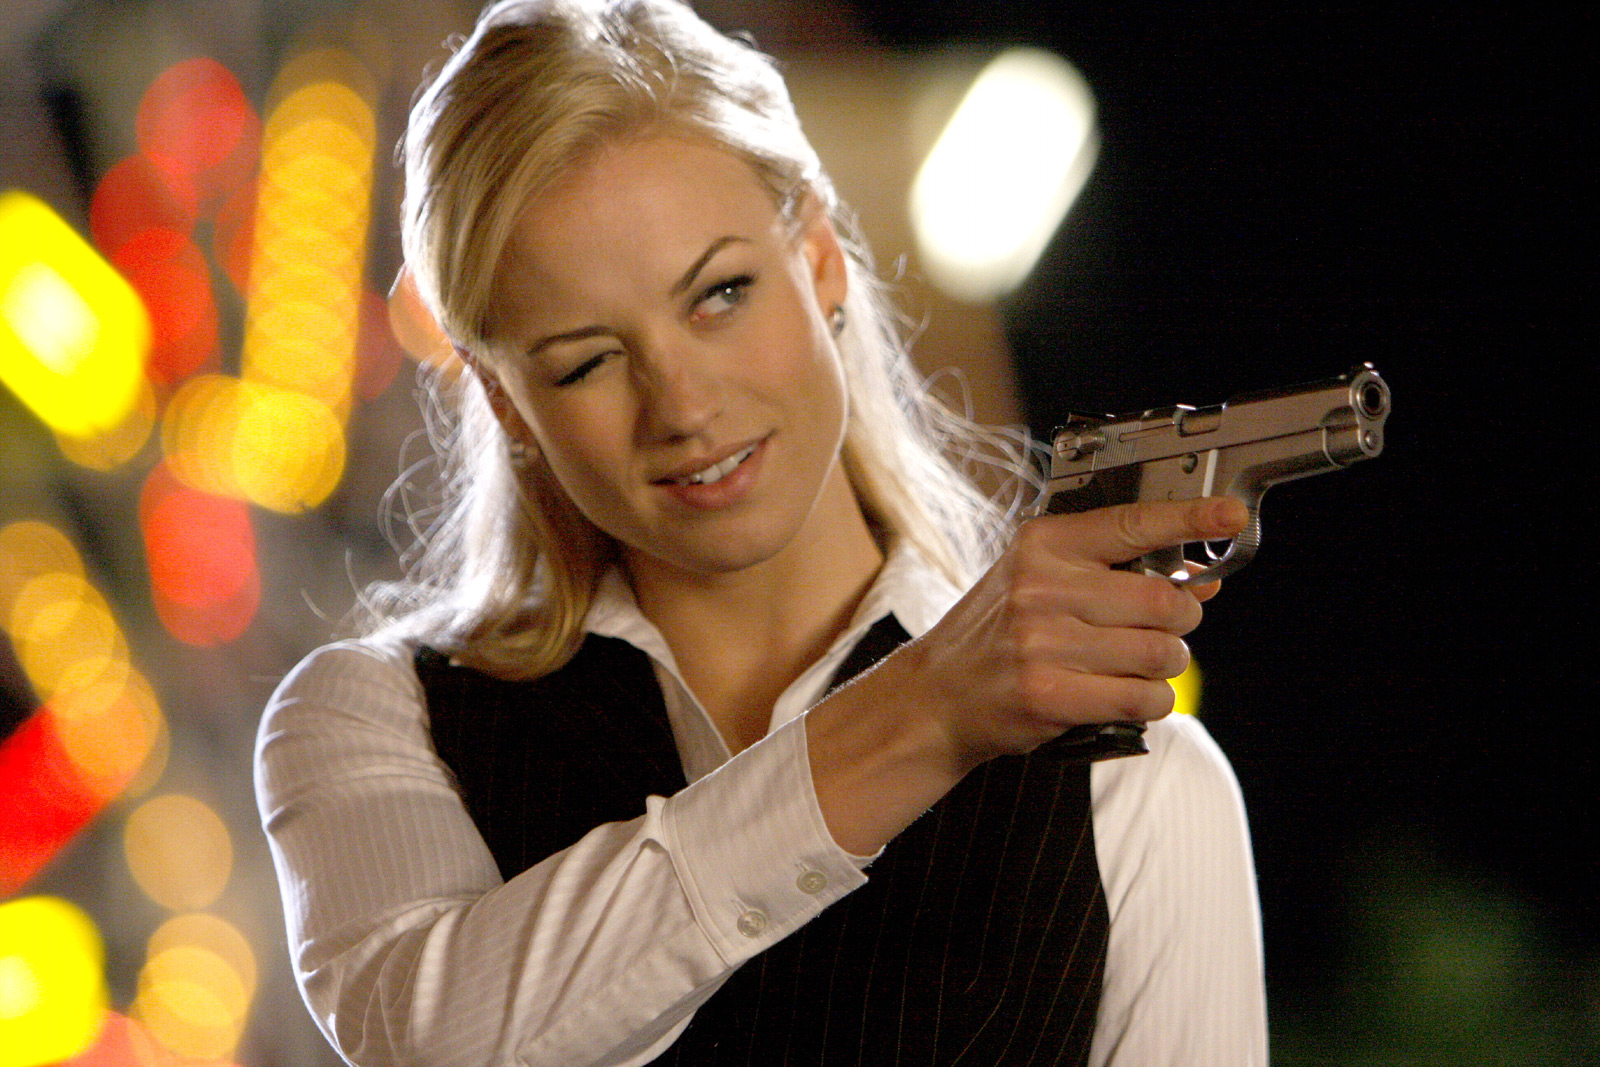 Pitstop Wallpapers Yvonne Strahovski wallpapers HD 2012 1600x1067